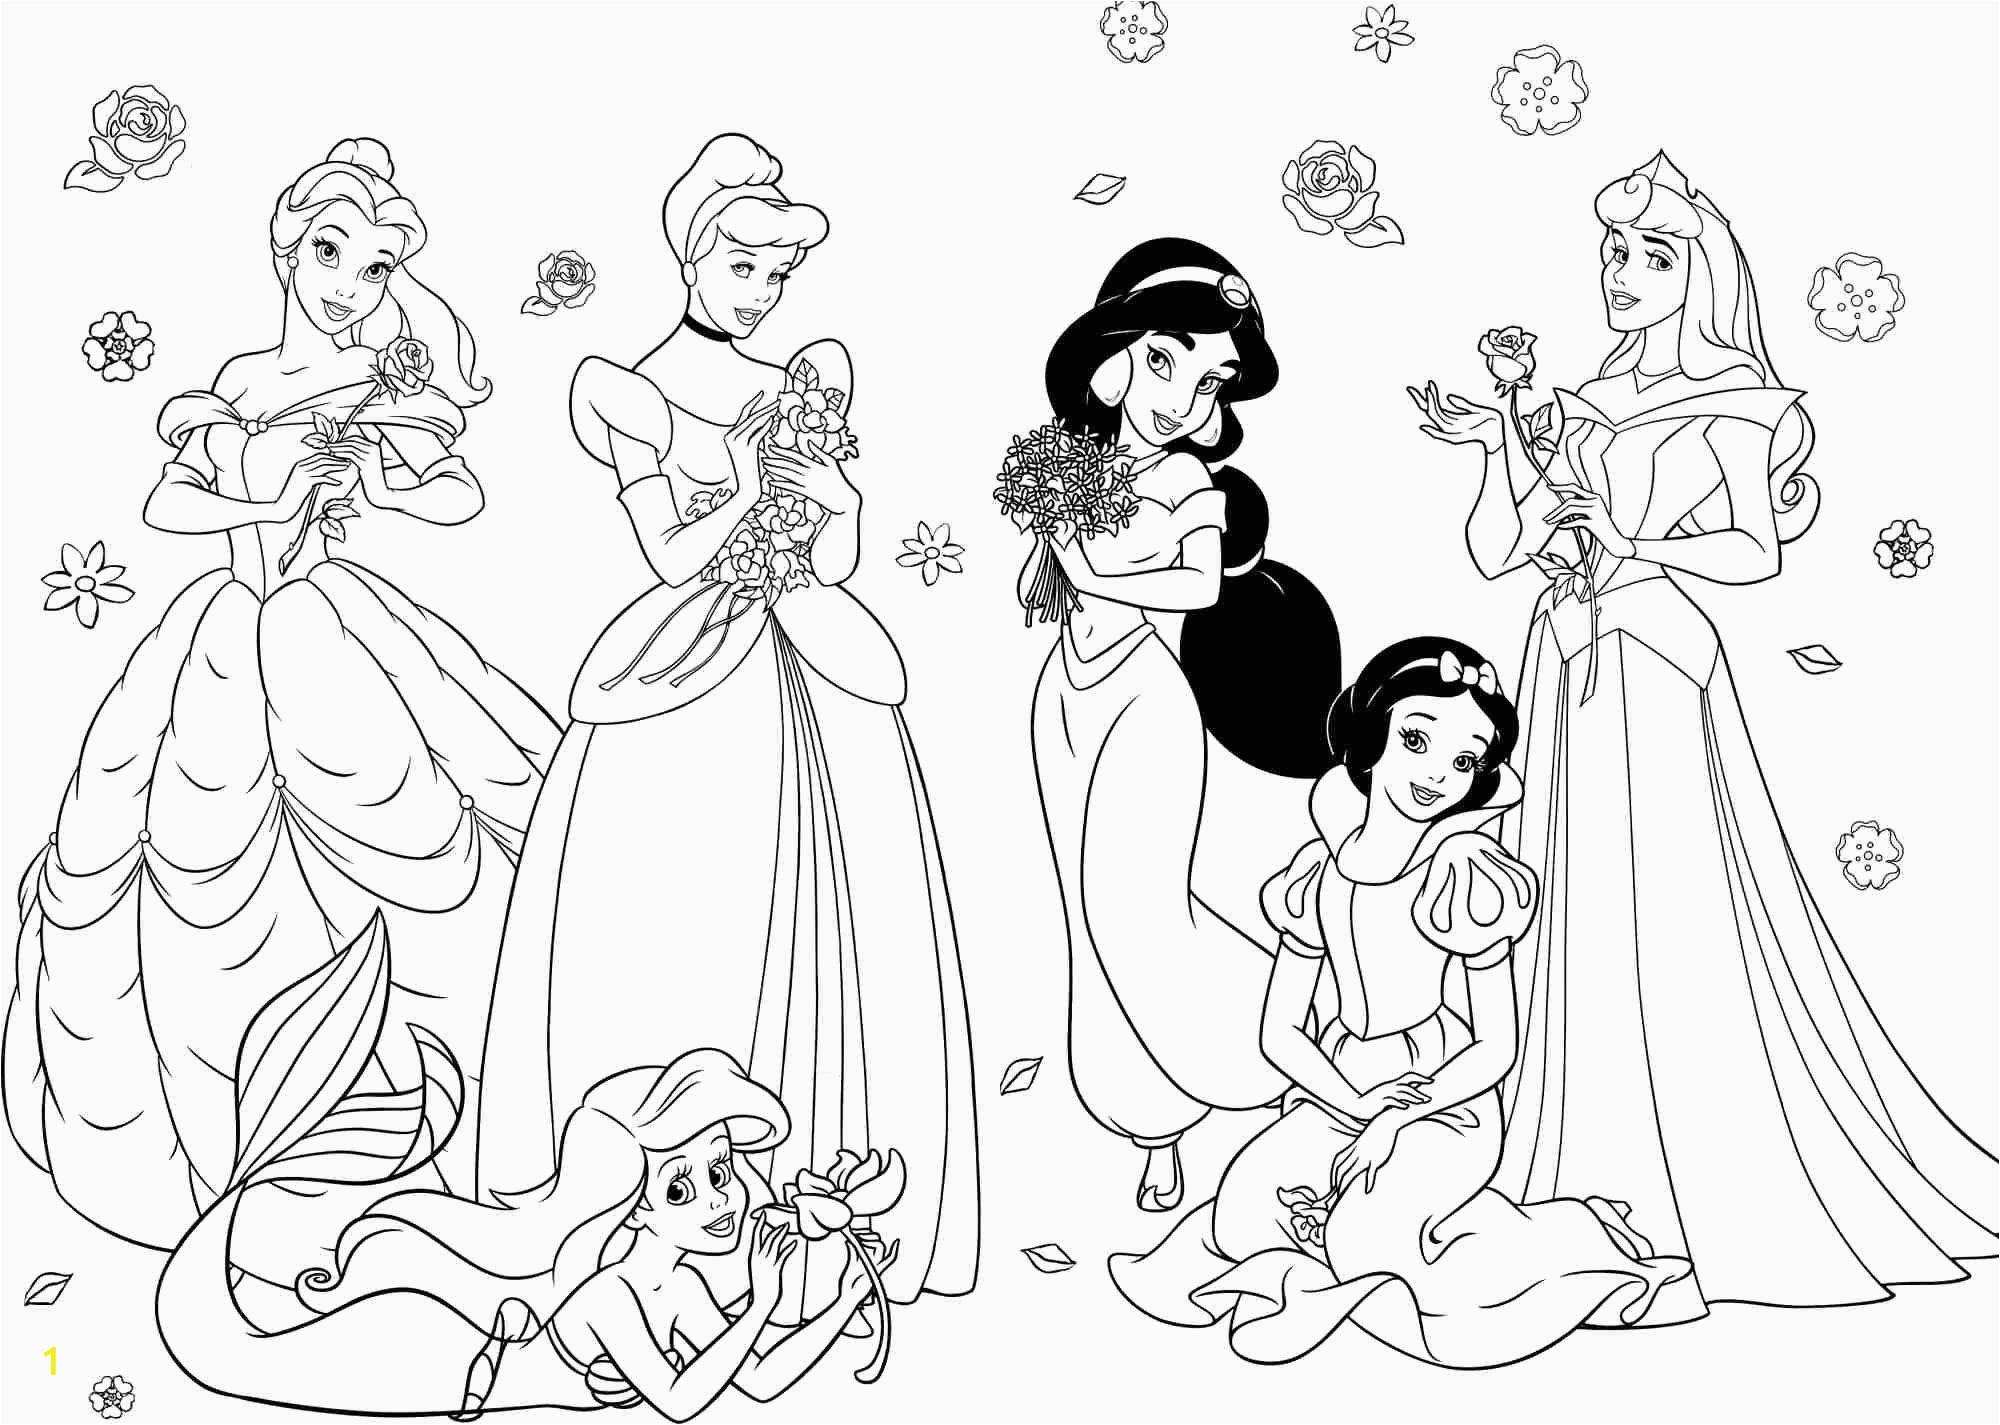 Disney Princess Coloring Pages Free to Print Tree Girl Coloring In 2020 with Images